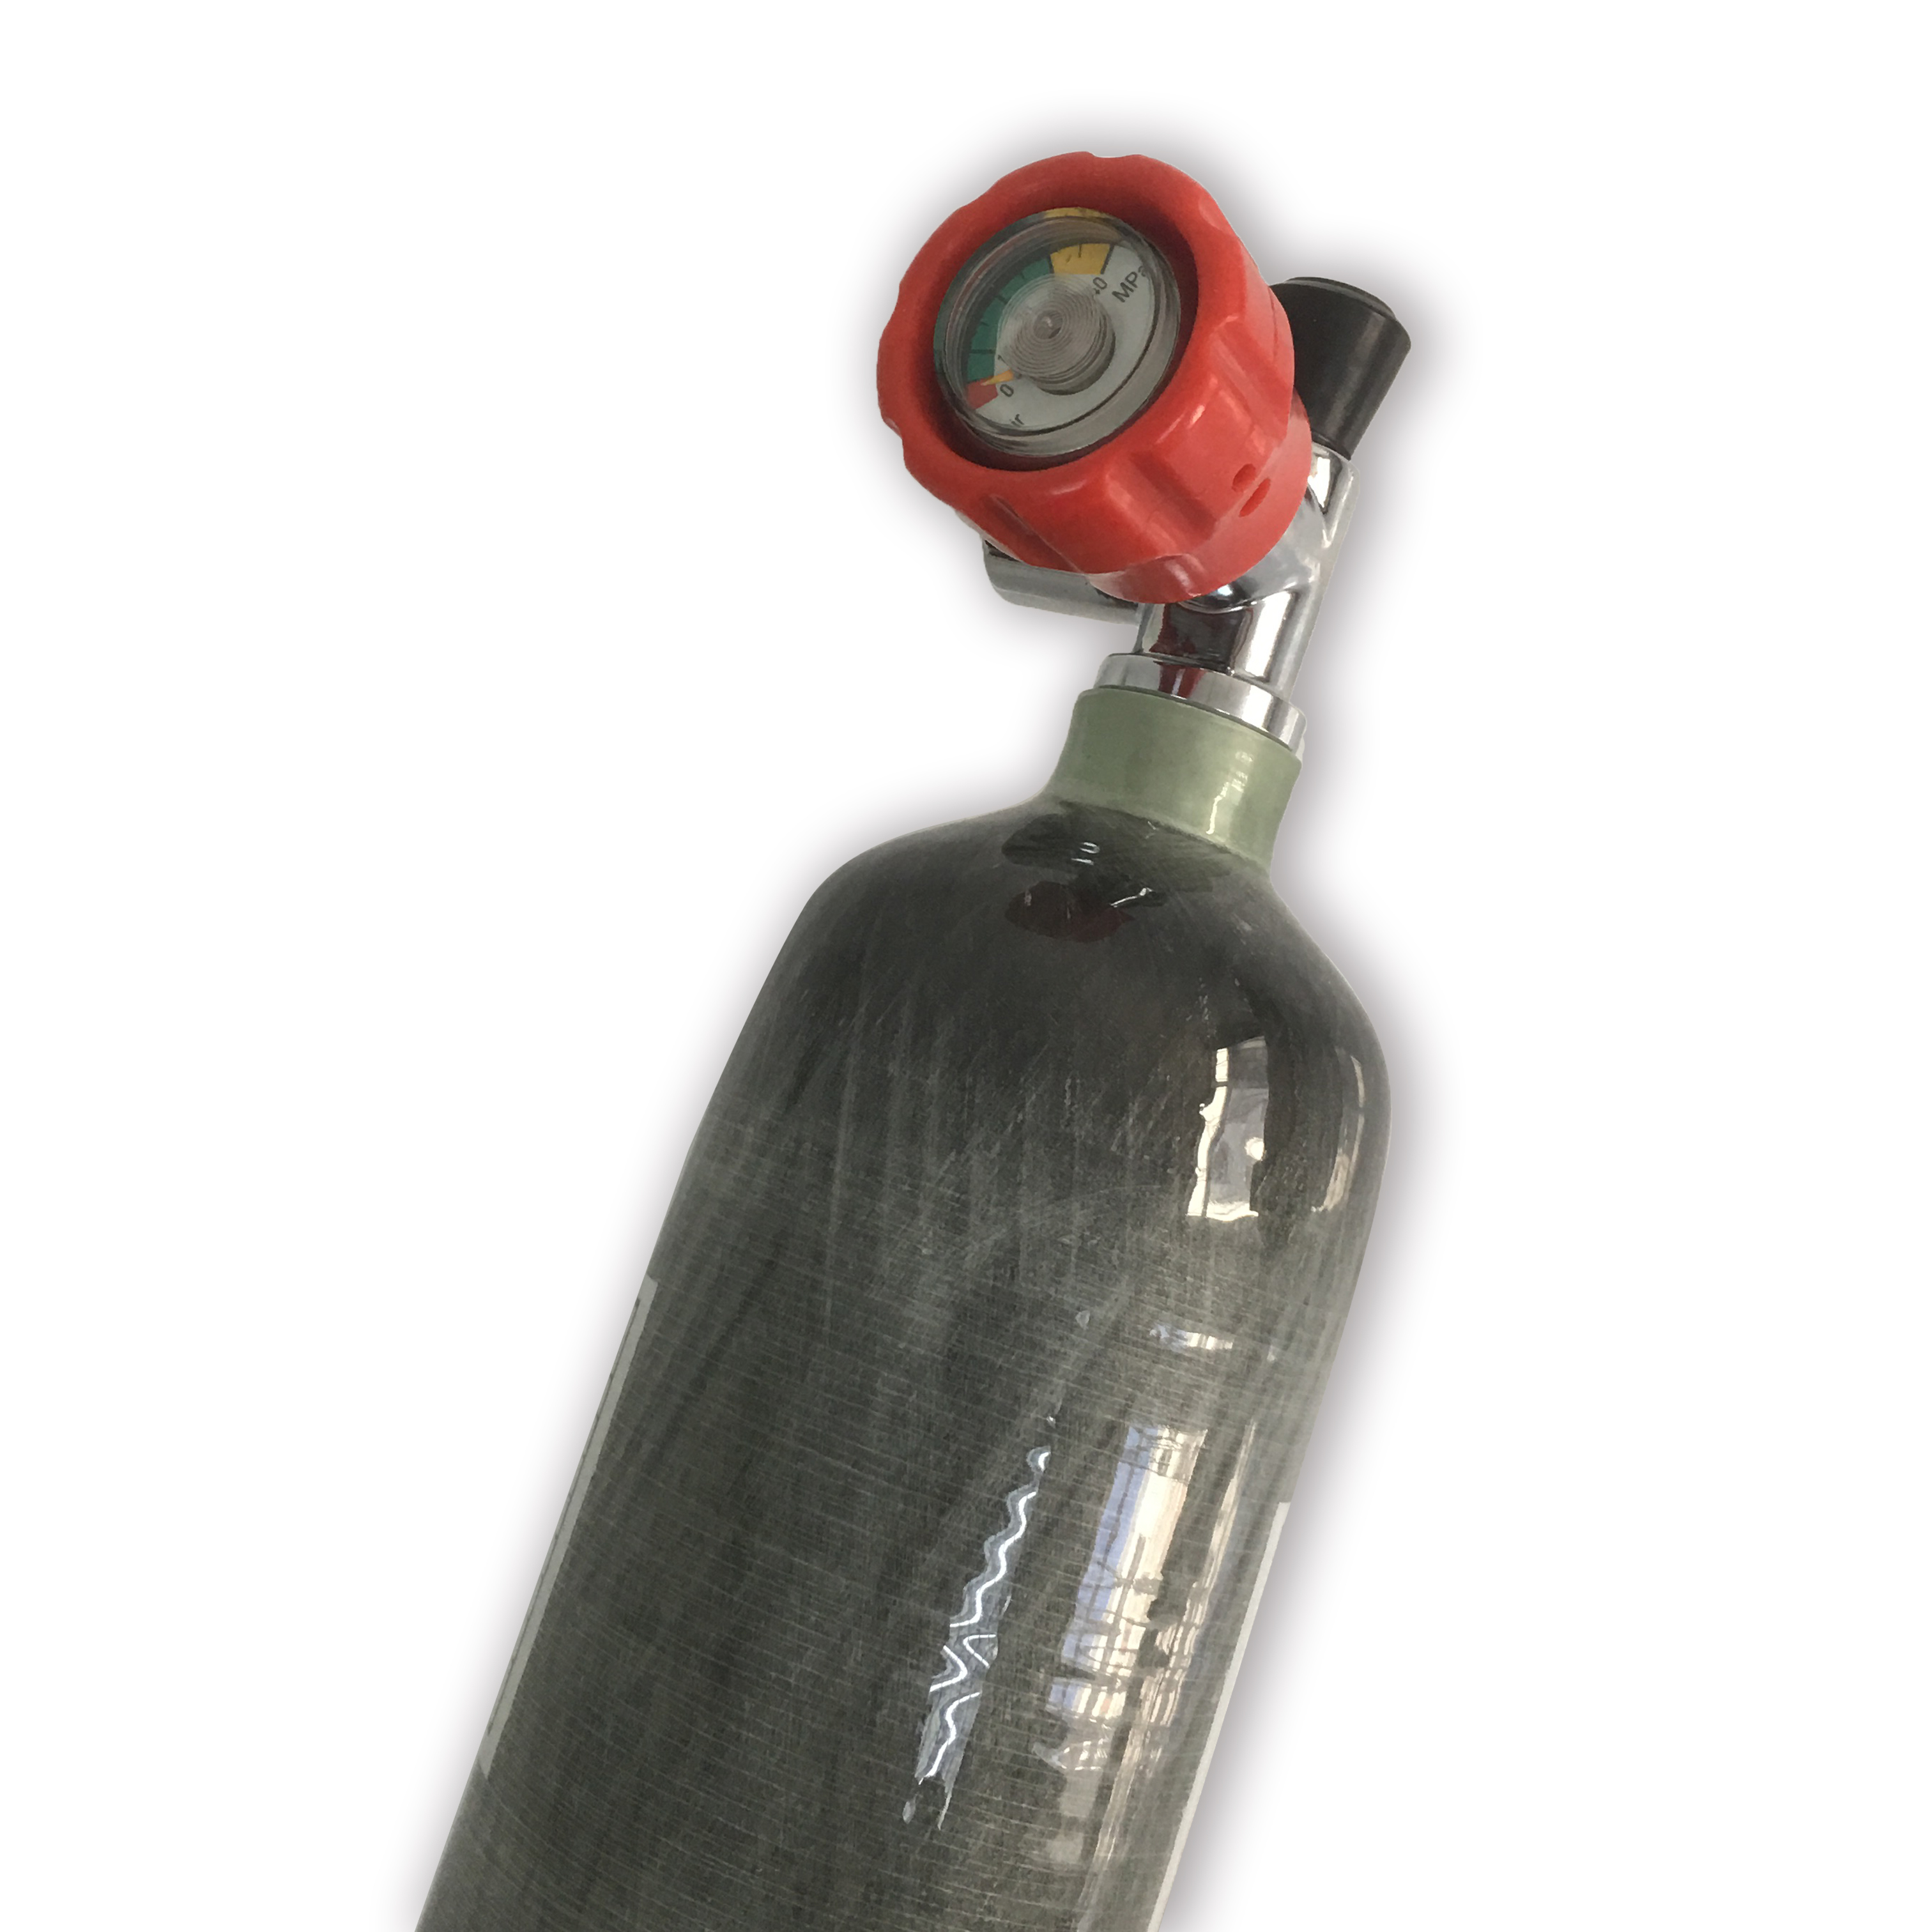 AC10211 2L CE Mini Scuba Diving Tank 4500Psi 30Mpa Paintball High Pressure Cylinder Pcp Airforce Condor Cylinder Pcp Valve in Fire Respirators from Security Protection